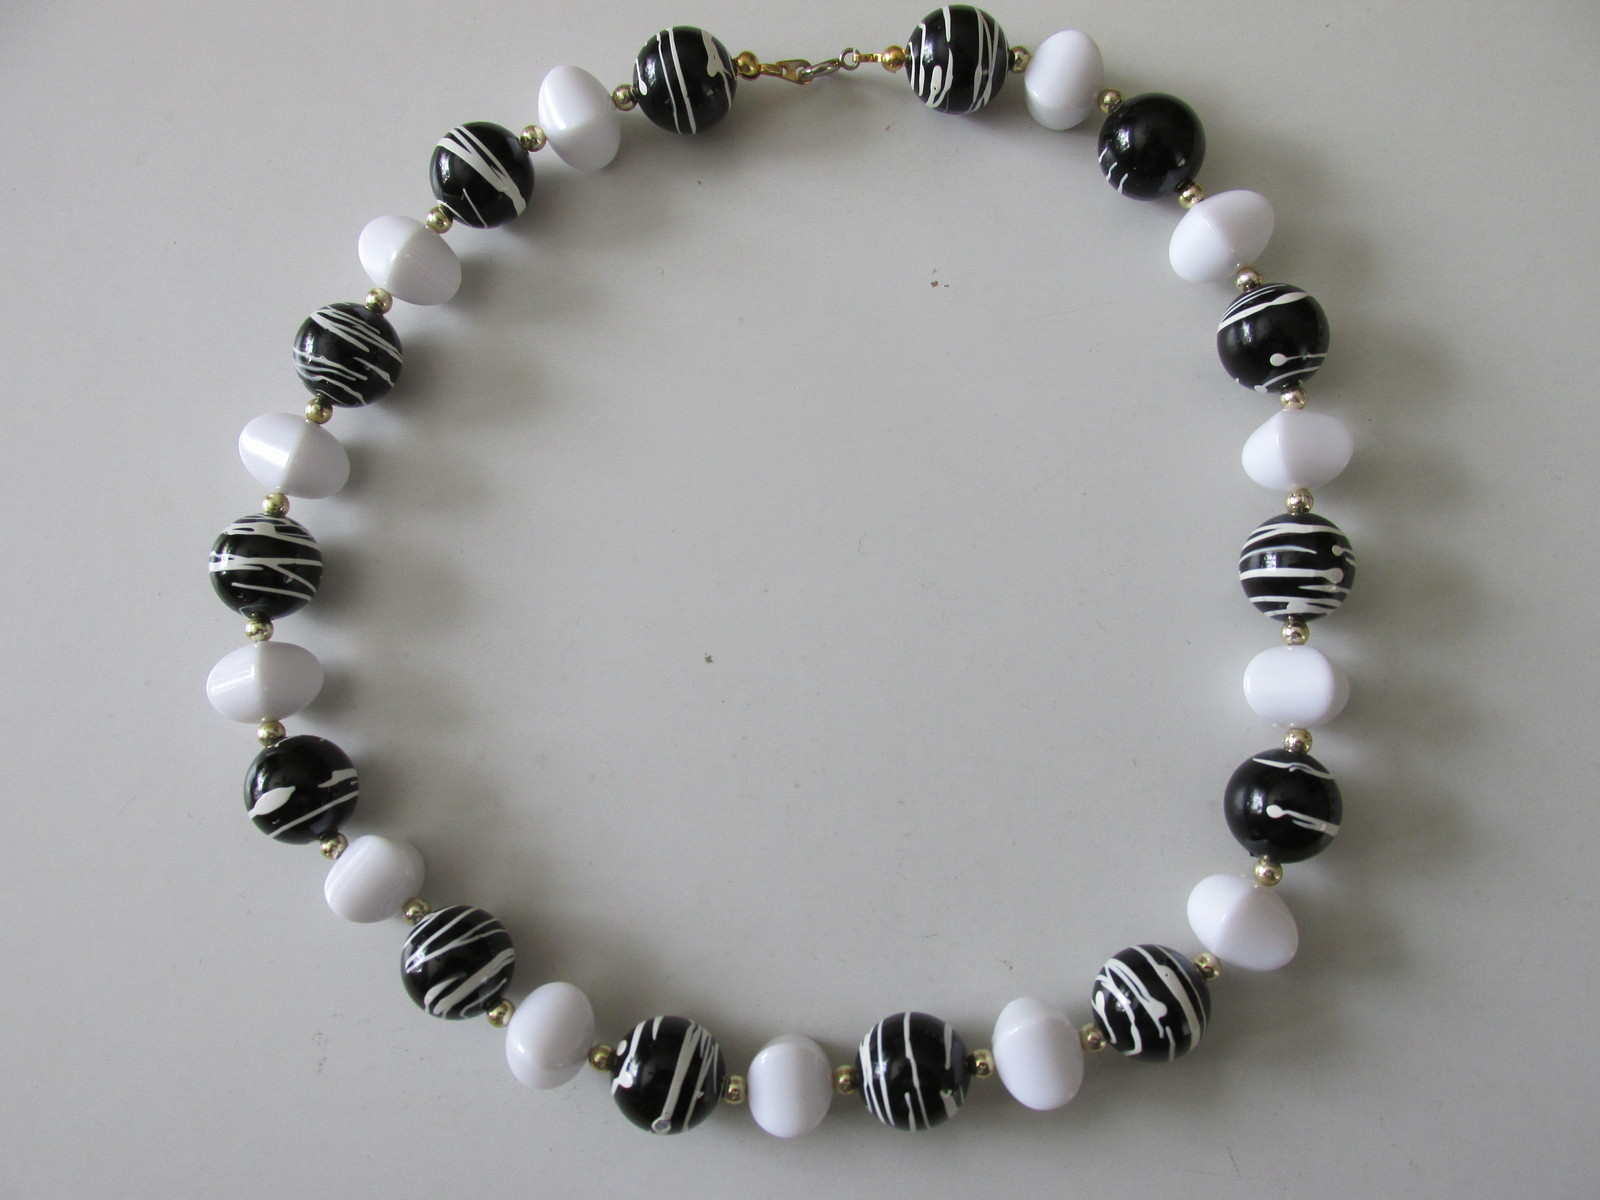 Black & White Retro / Vintage Plastic Beaded Necklaces - A Great Look!